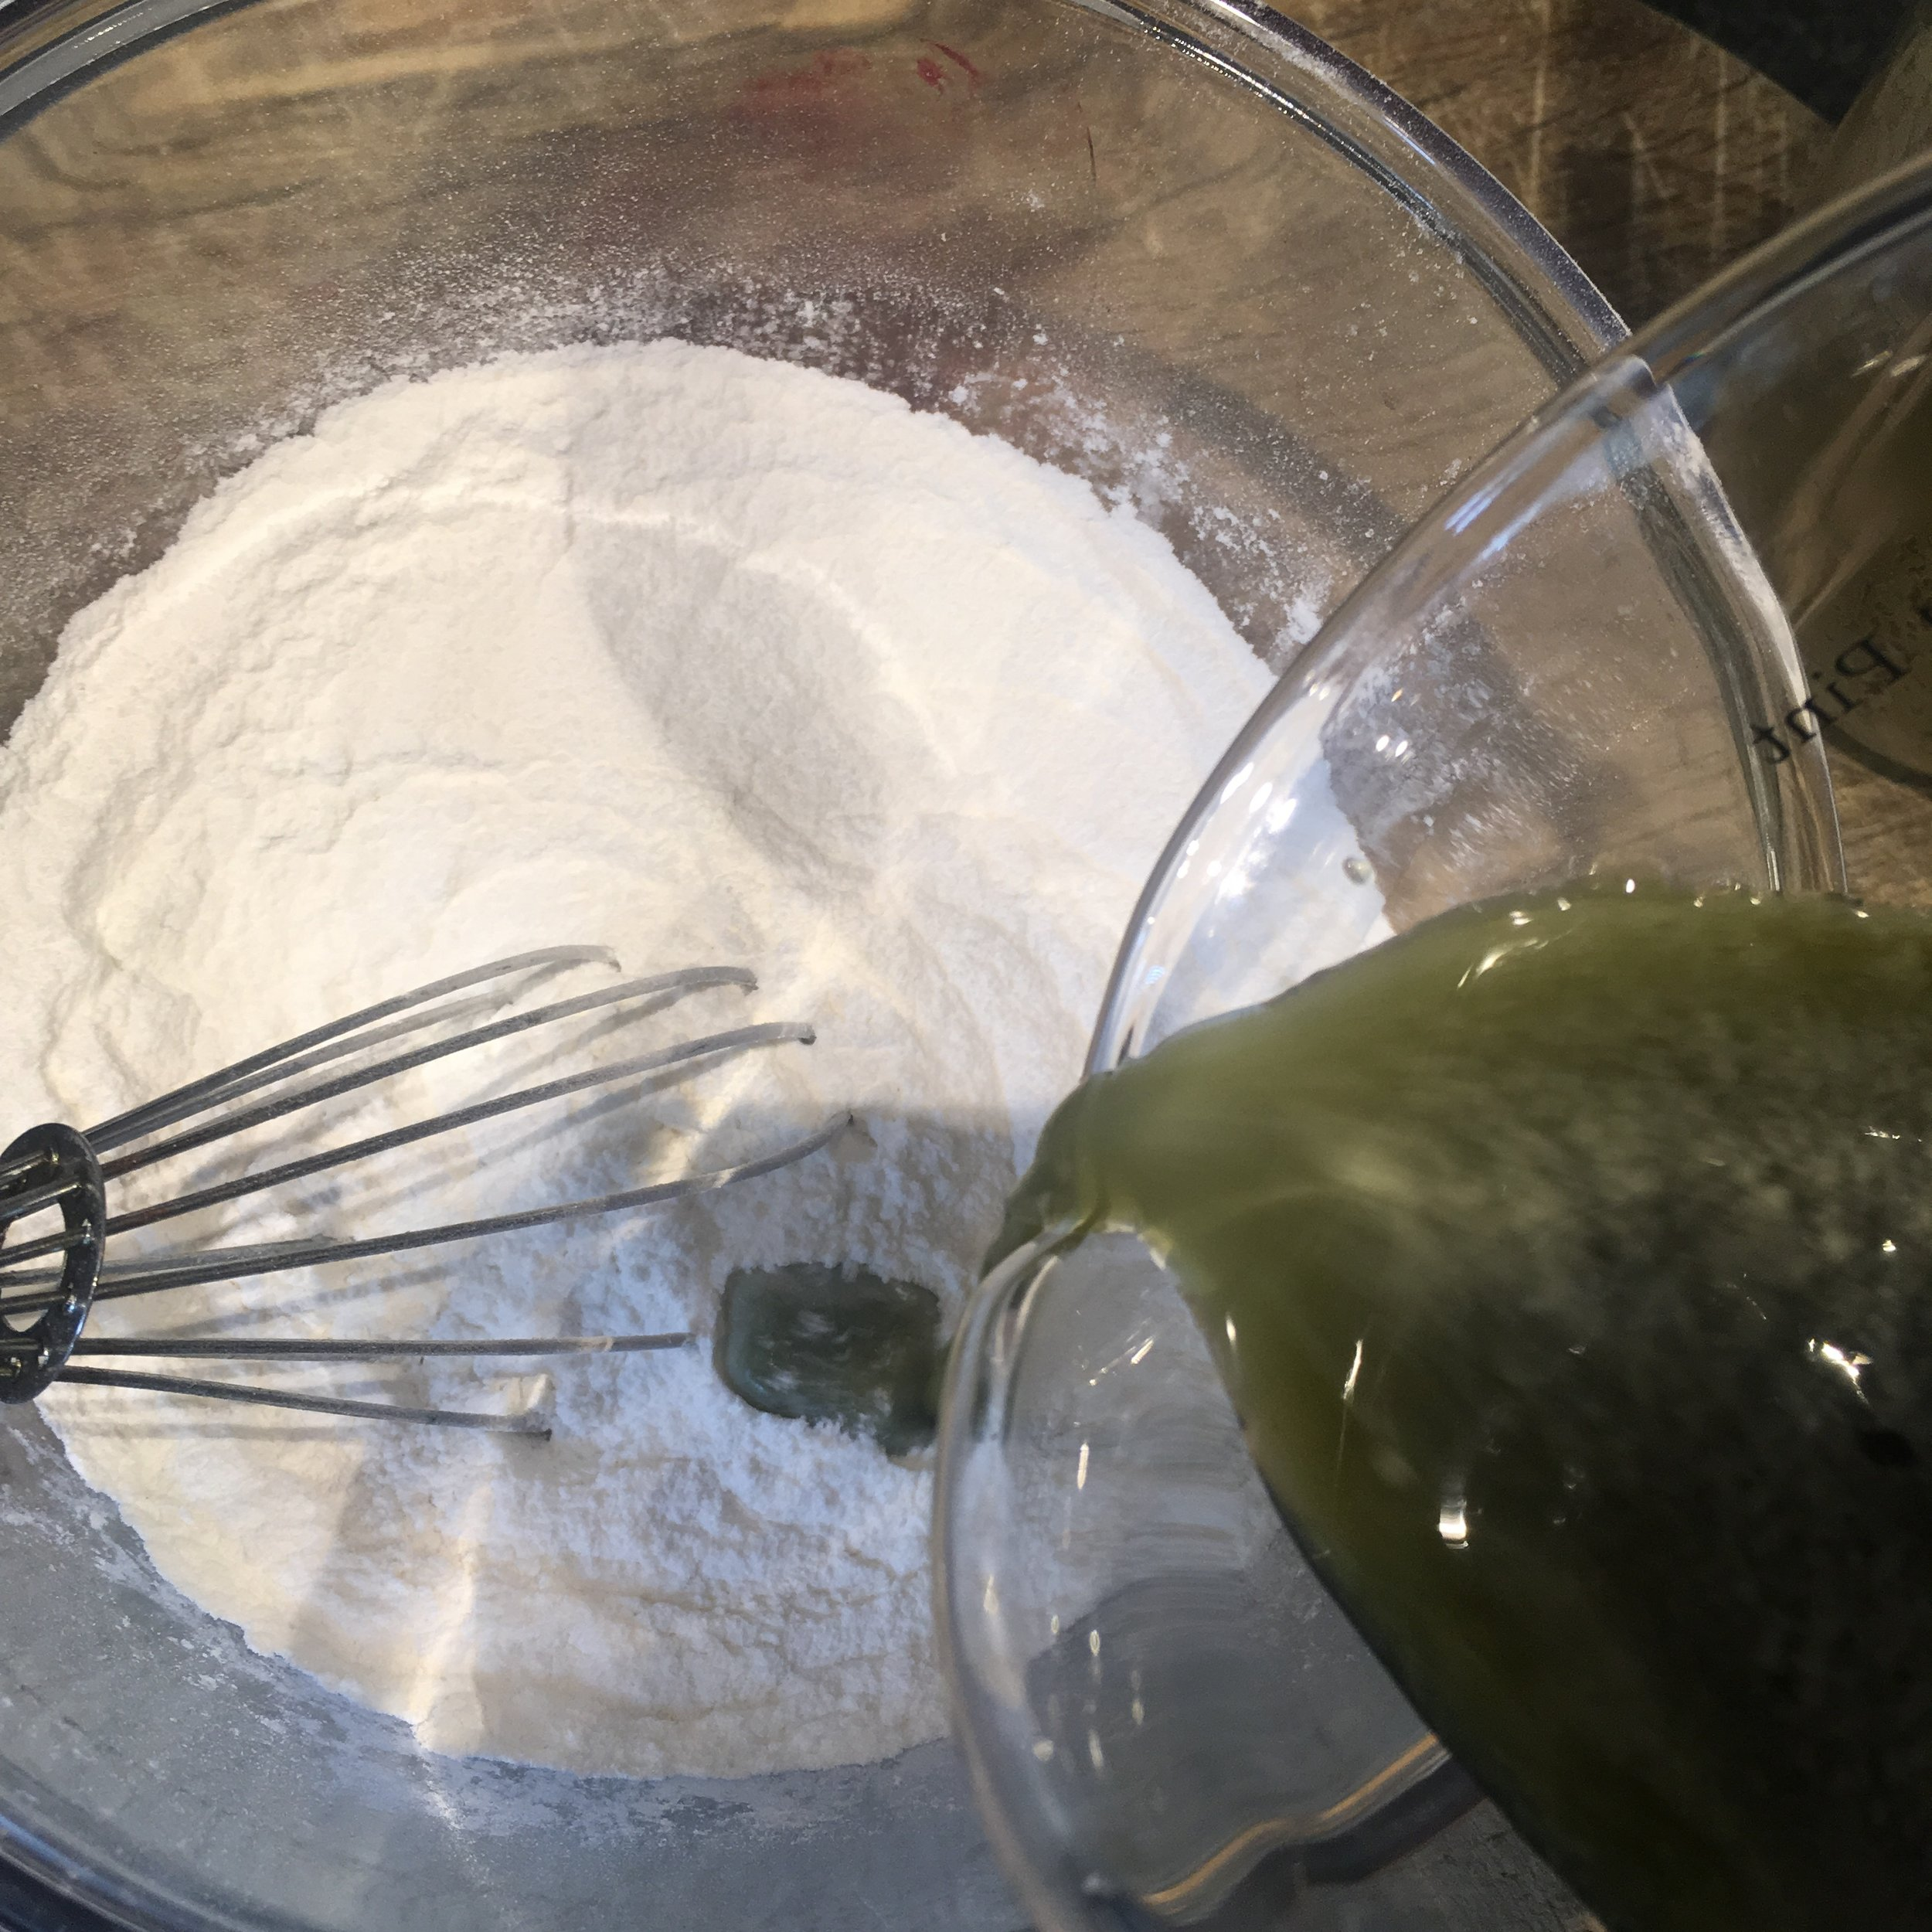 Whisk the liquid briskly into the dry mixture -